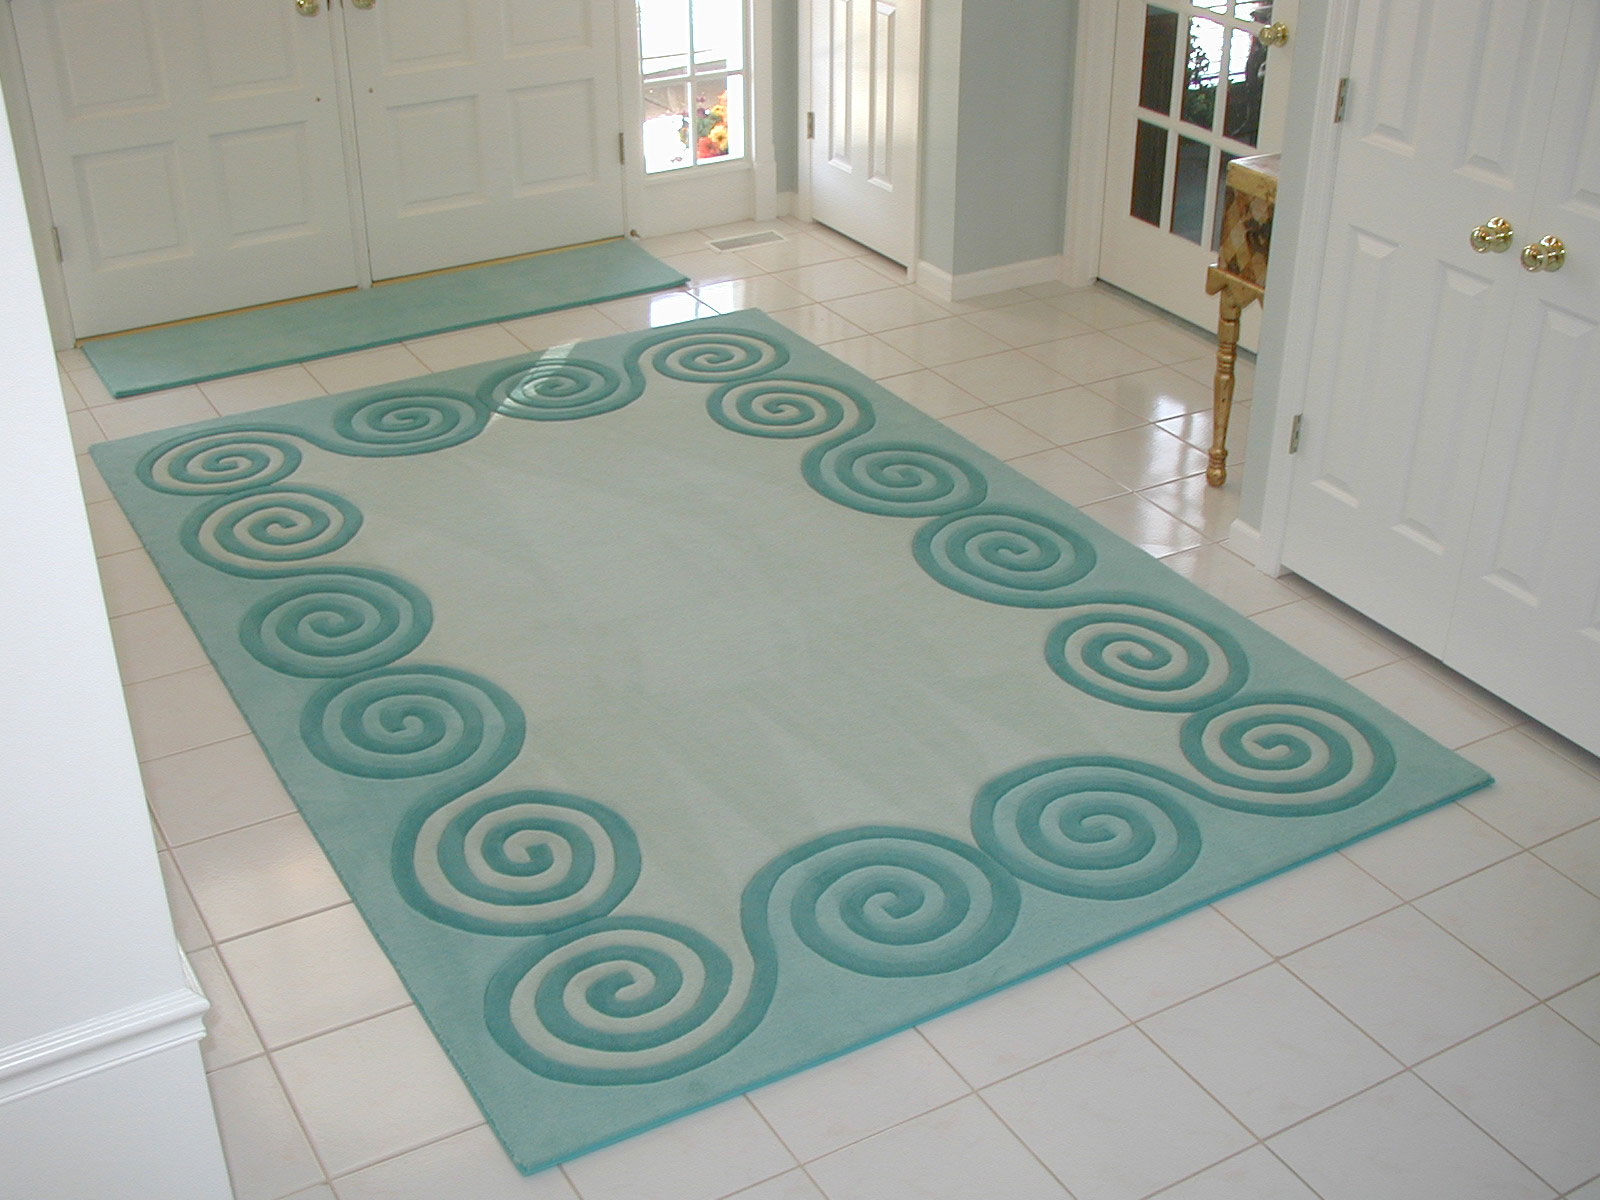 Foyer Room Size : Entryway rug size room ornament